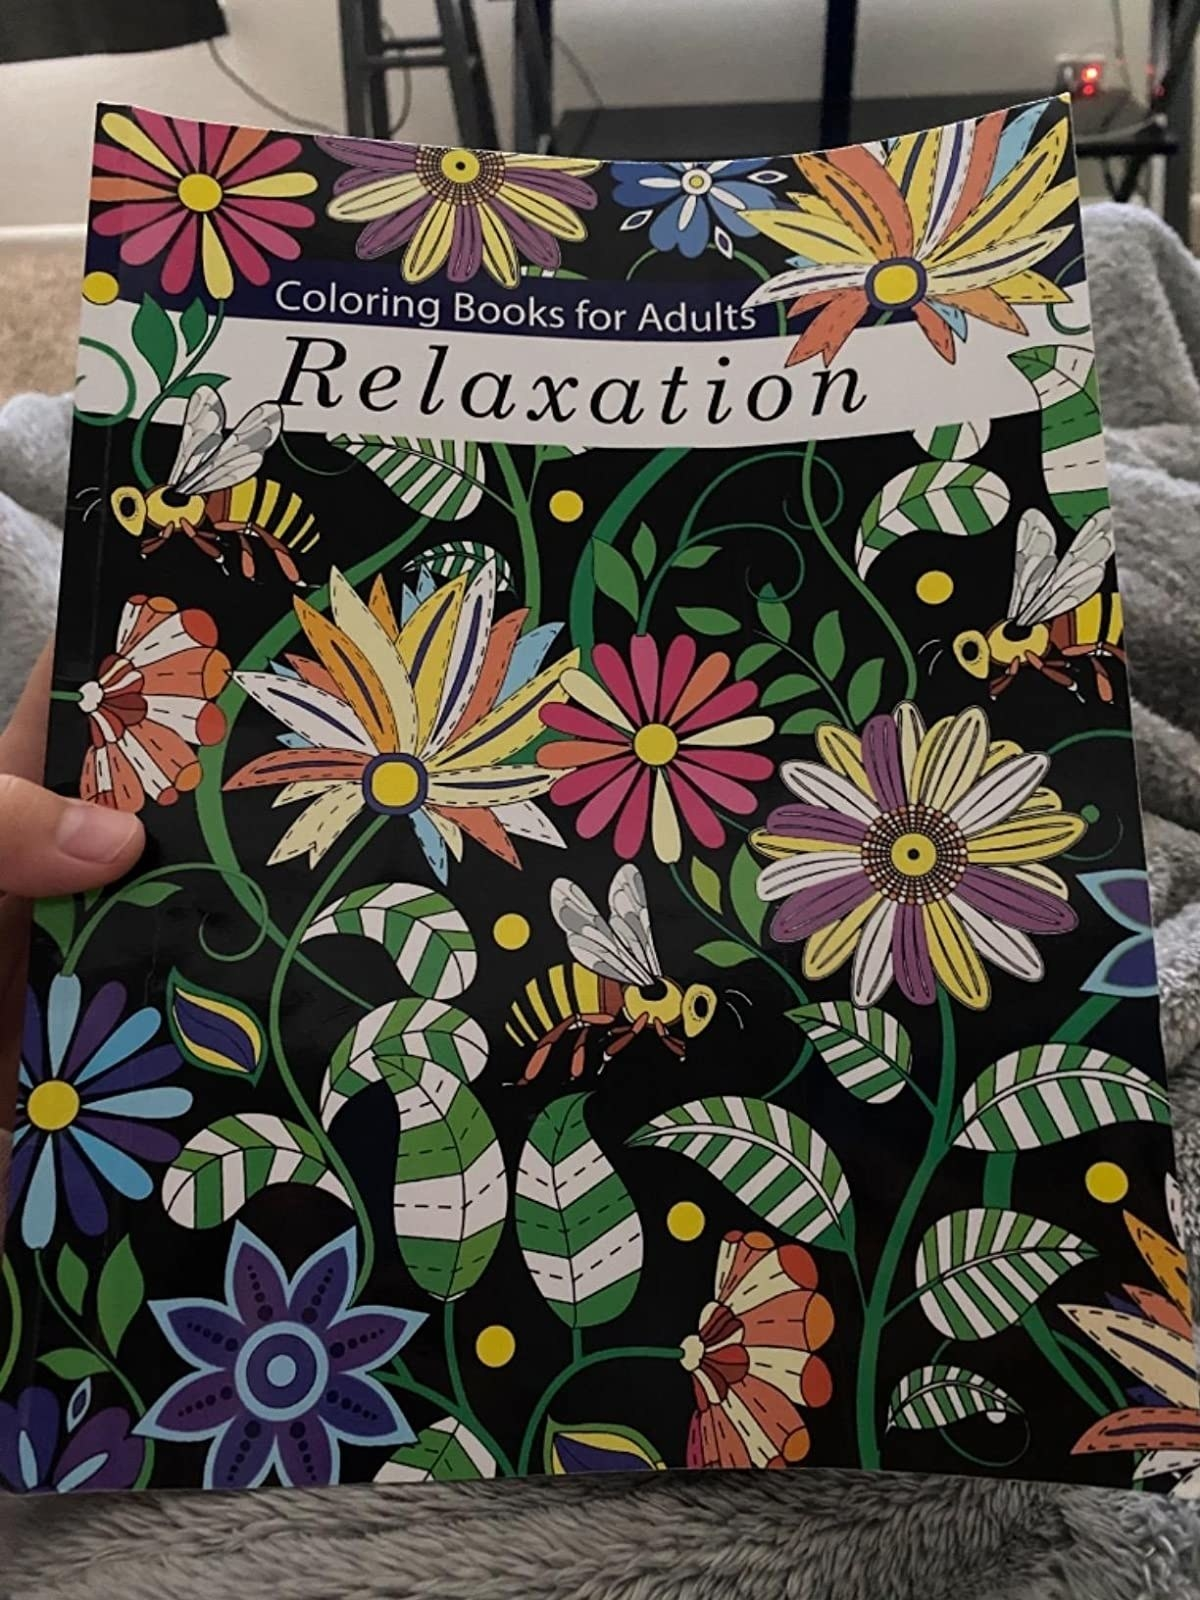 A reviewer holds up the cover of Coloring Books for Adults: Relaxation, depicting flowers and insects, that they purchased off of Amazon